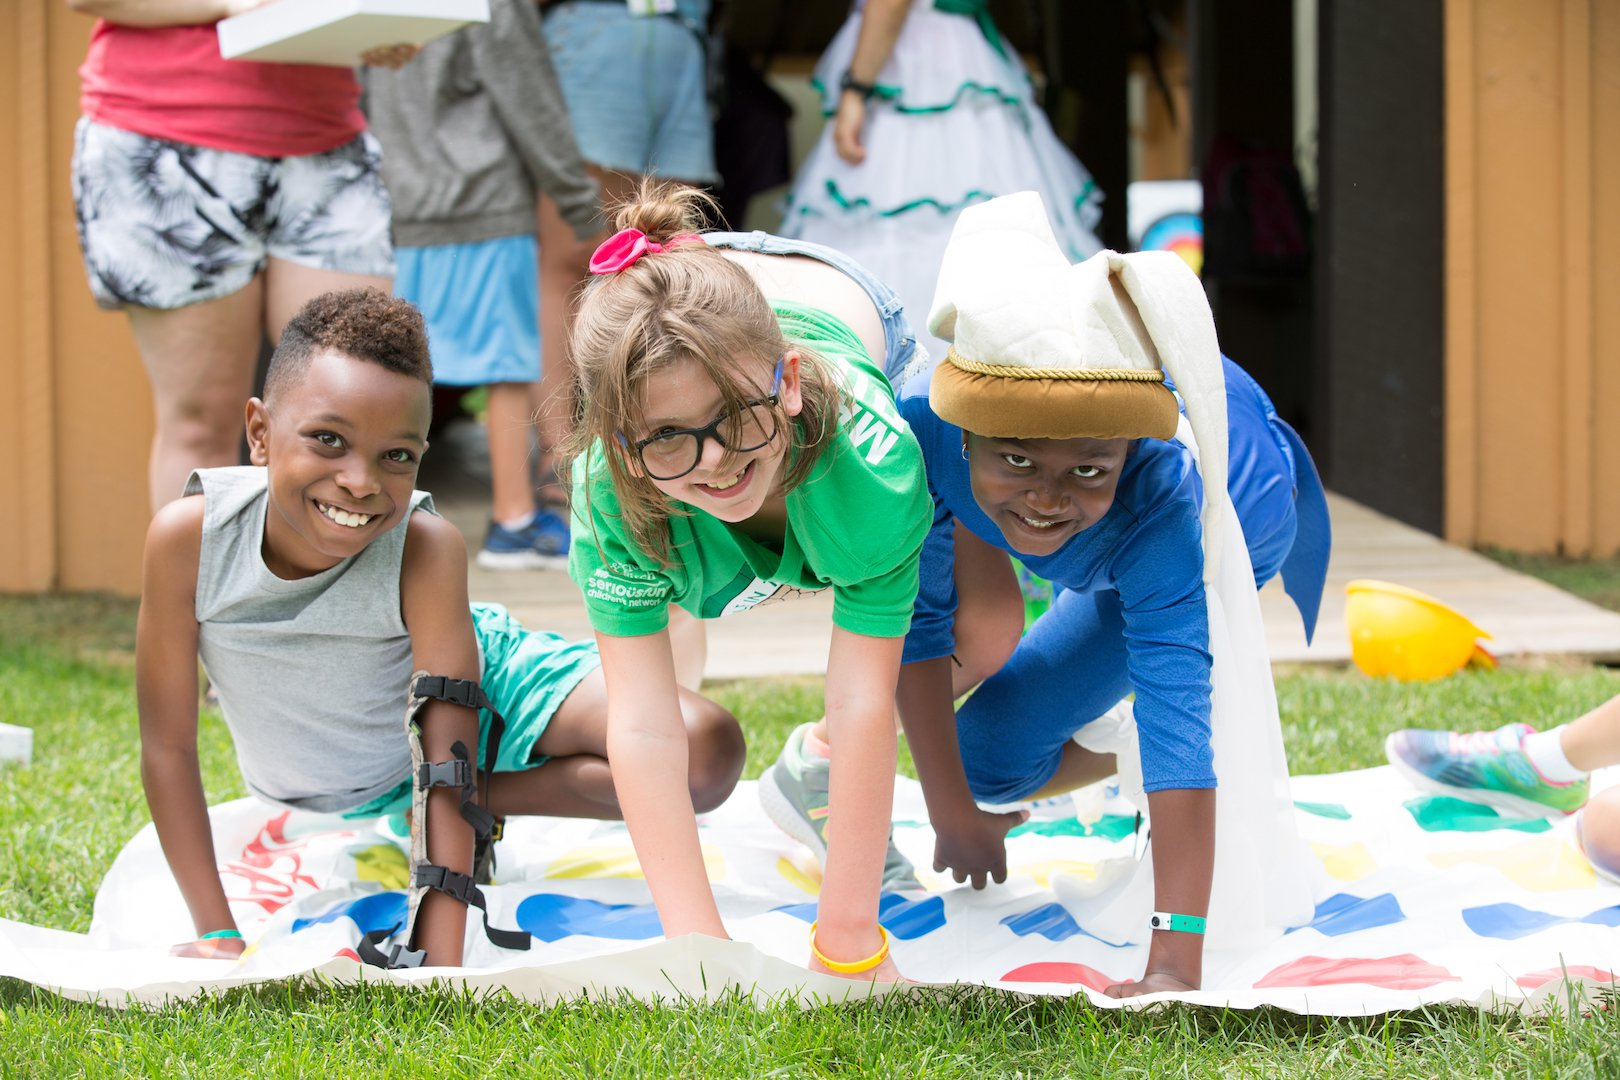 Seriousfun Children's Network - Therapeutic Camps+G87